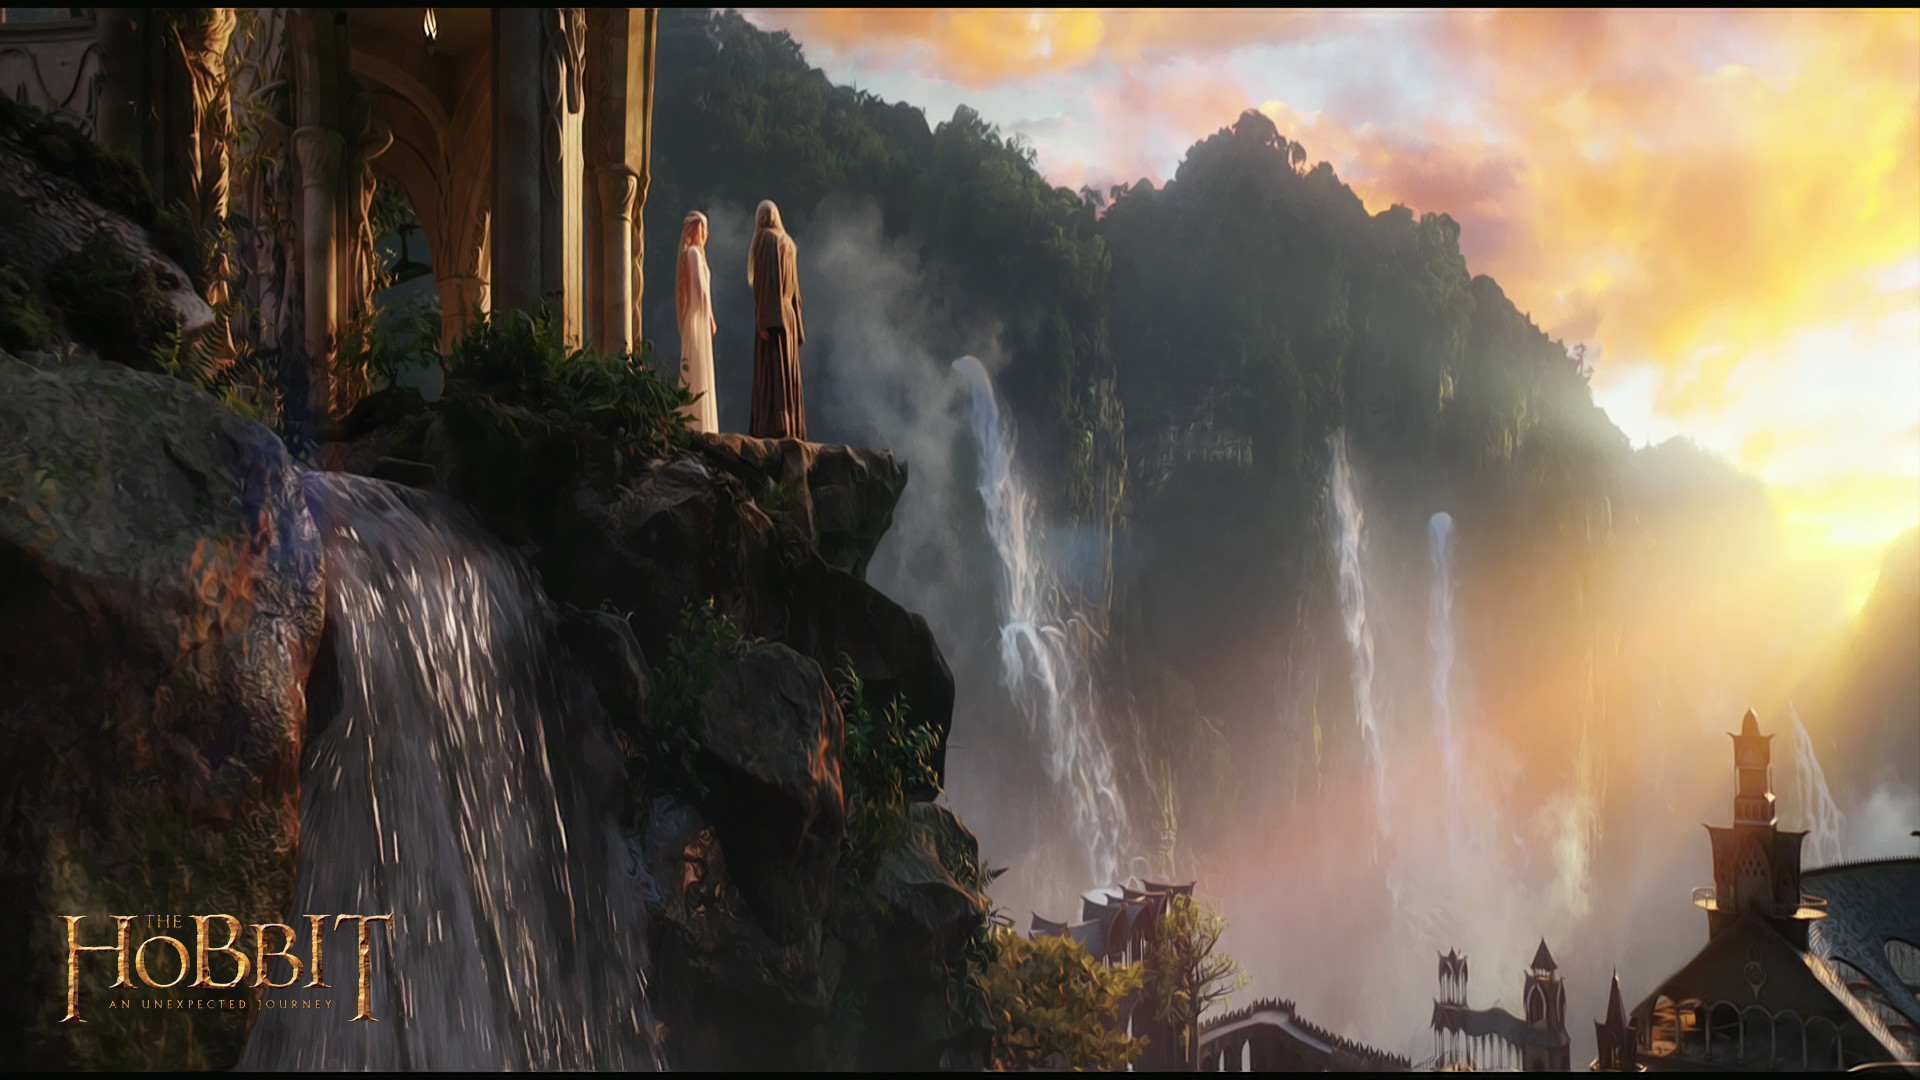 The Hobbit: An Unexpected Journey Rivendell